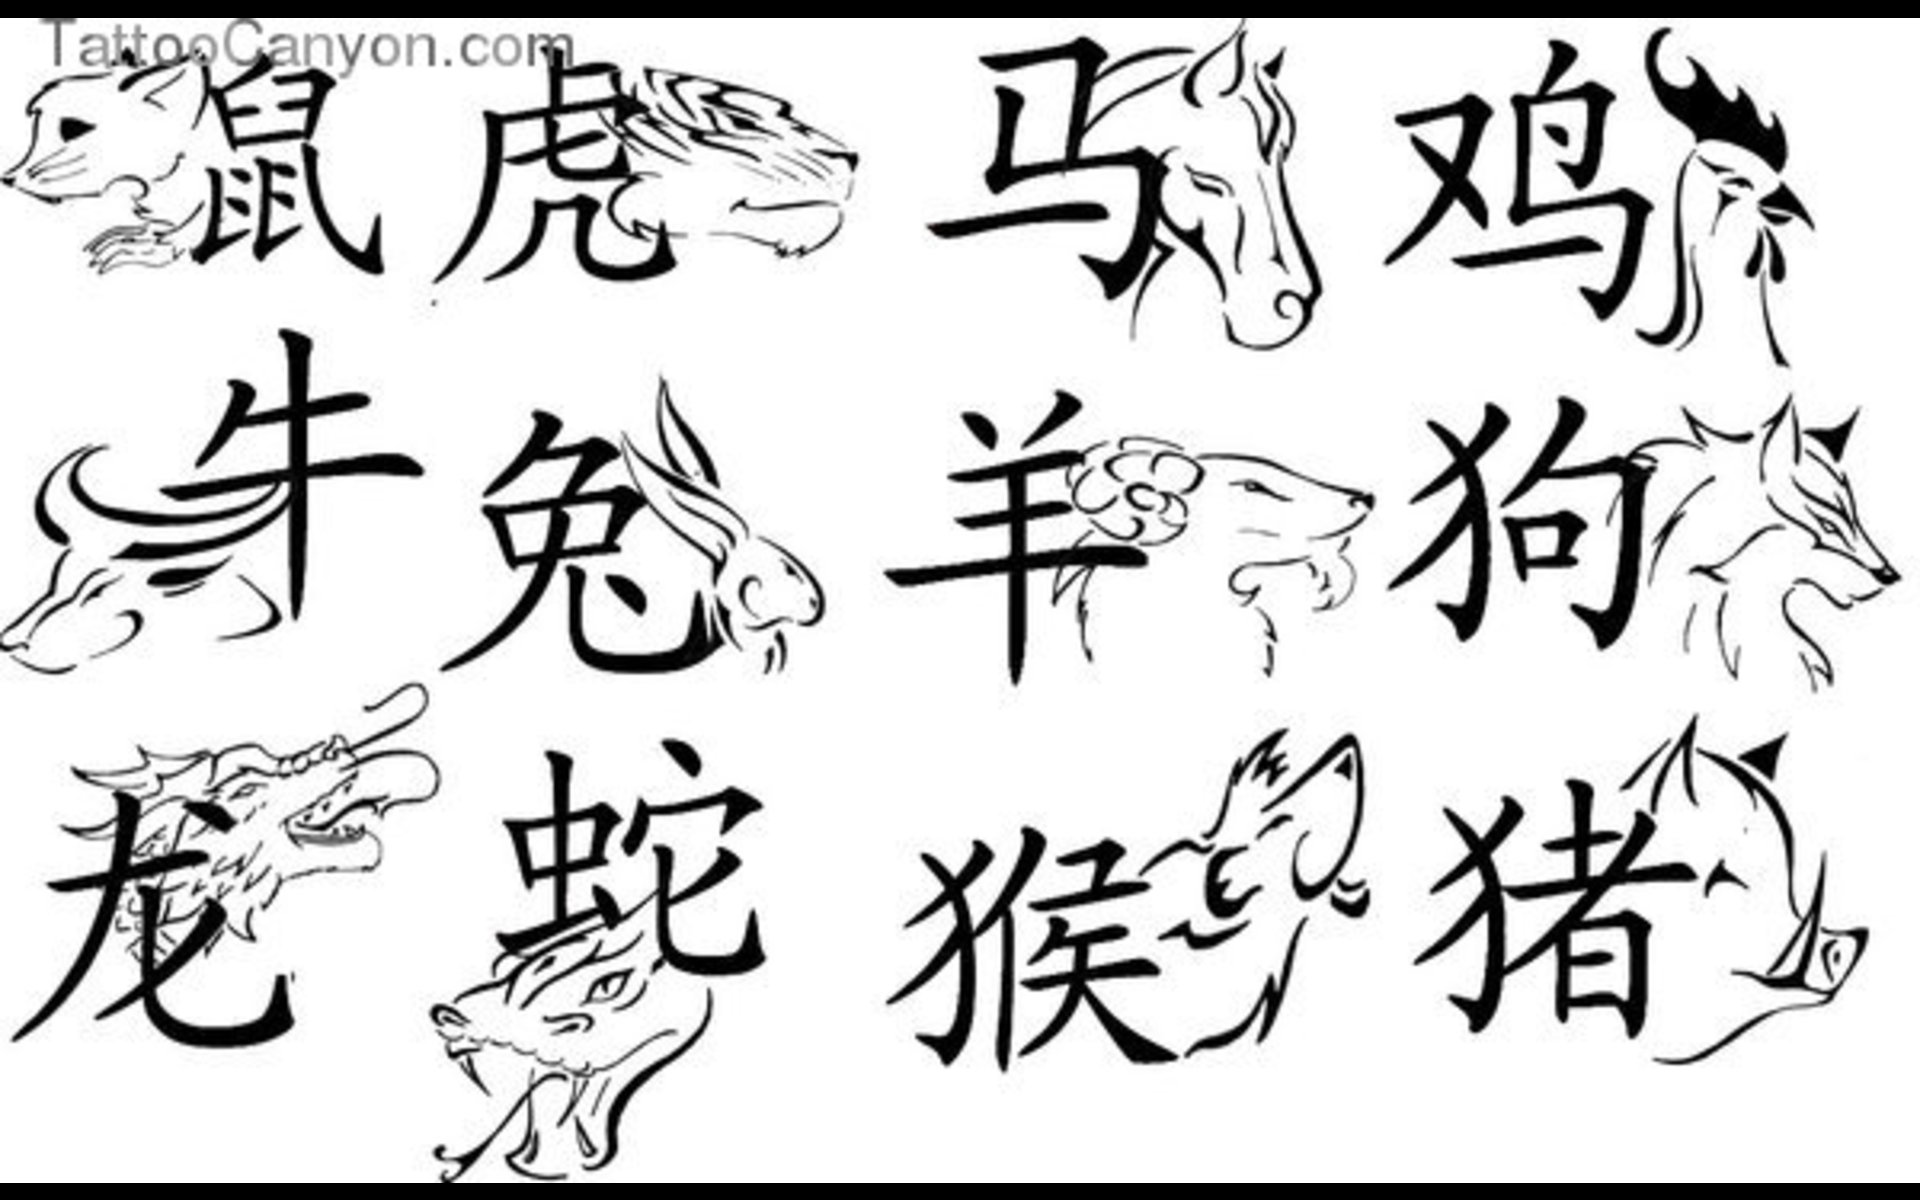 50 zodiac sign tattoos designs chinese zodiac sign with symbol tattoo flash by maximo willms buycottarizona Image collections